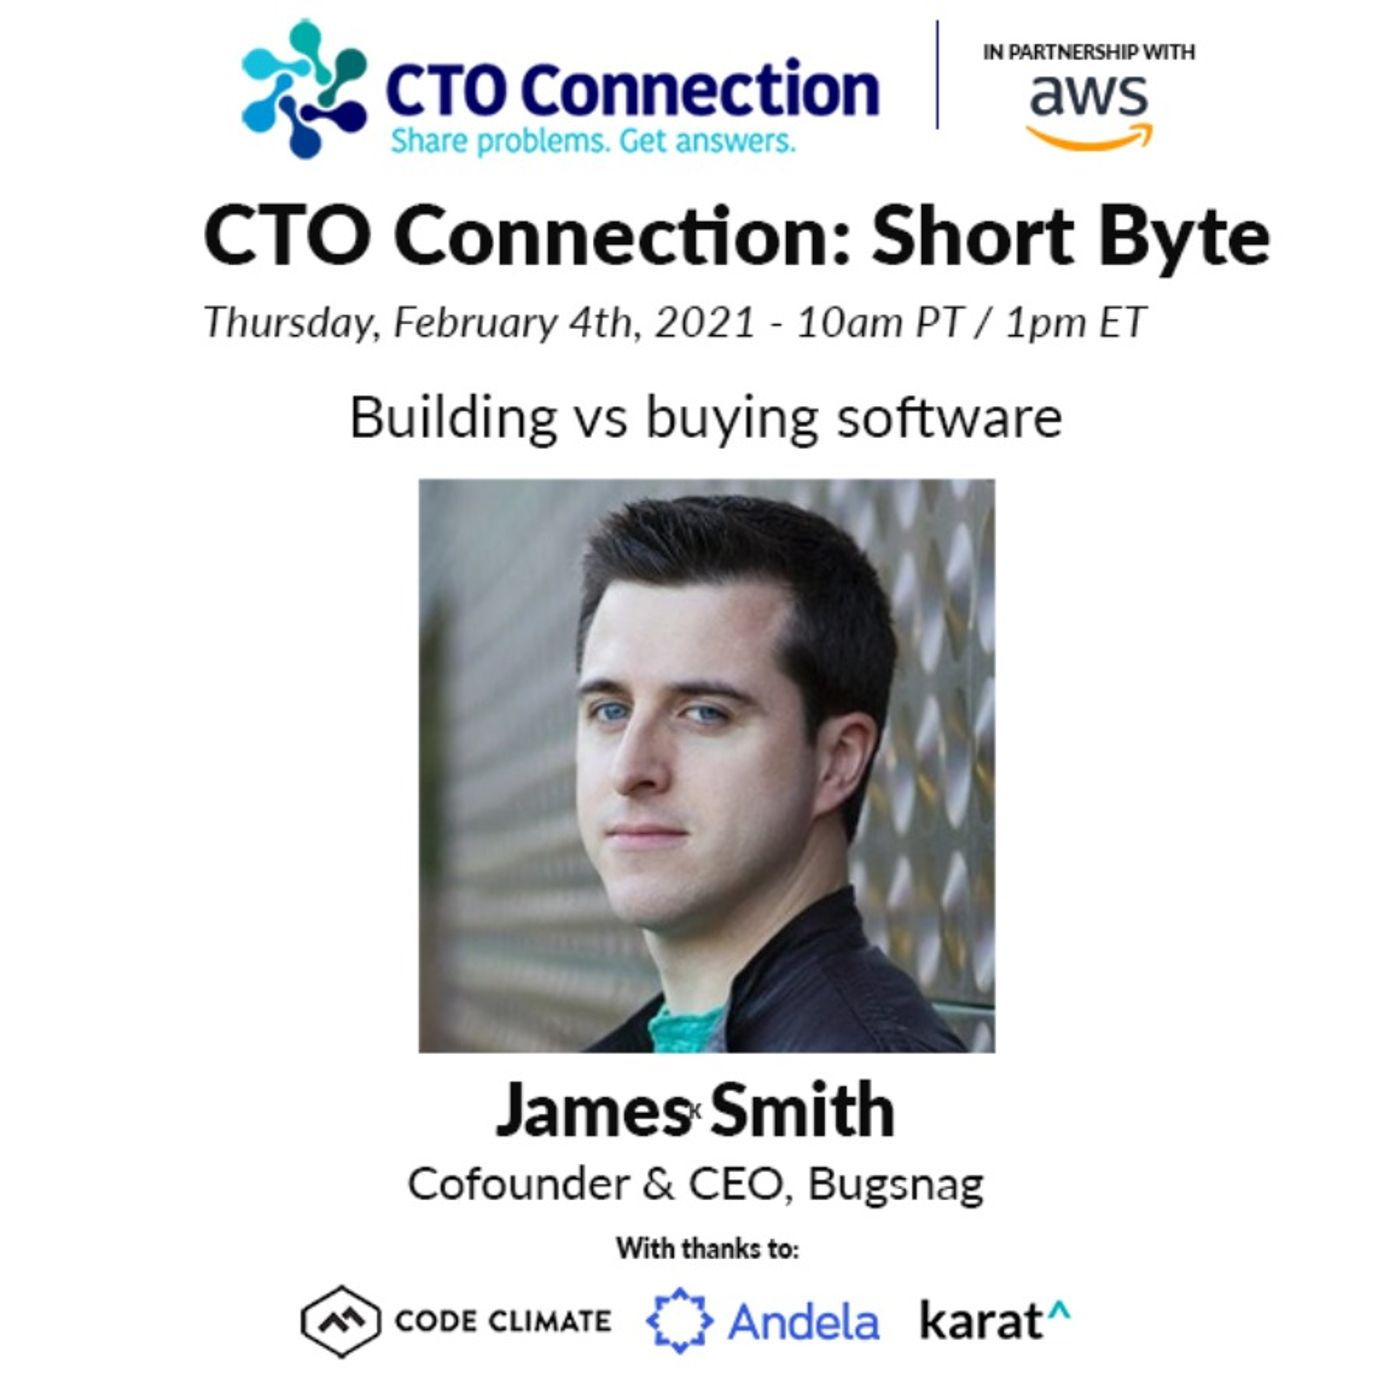 Short Byte: James Smith - Building vs buying software